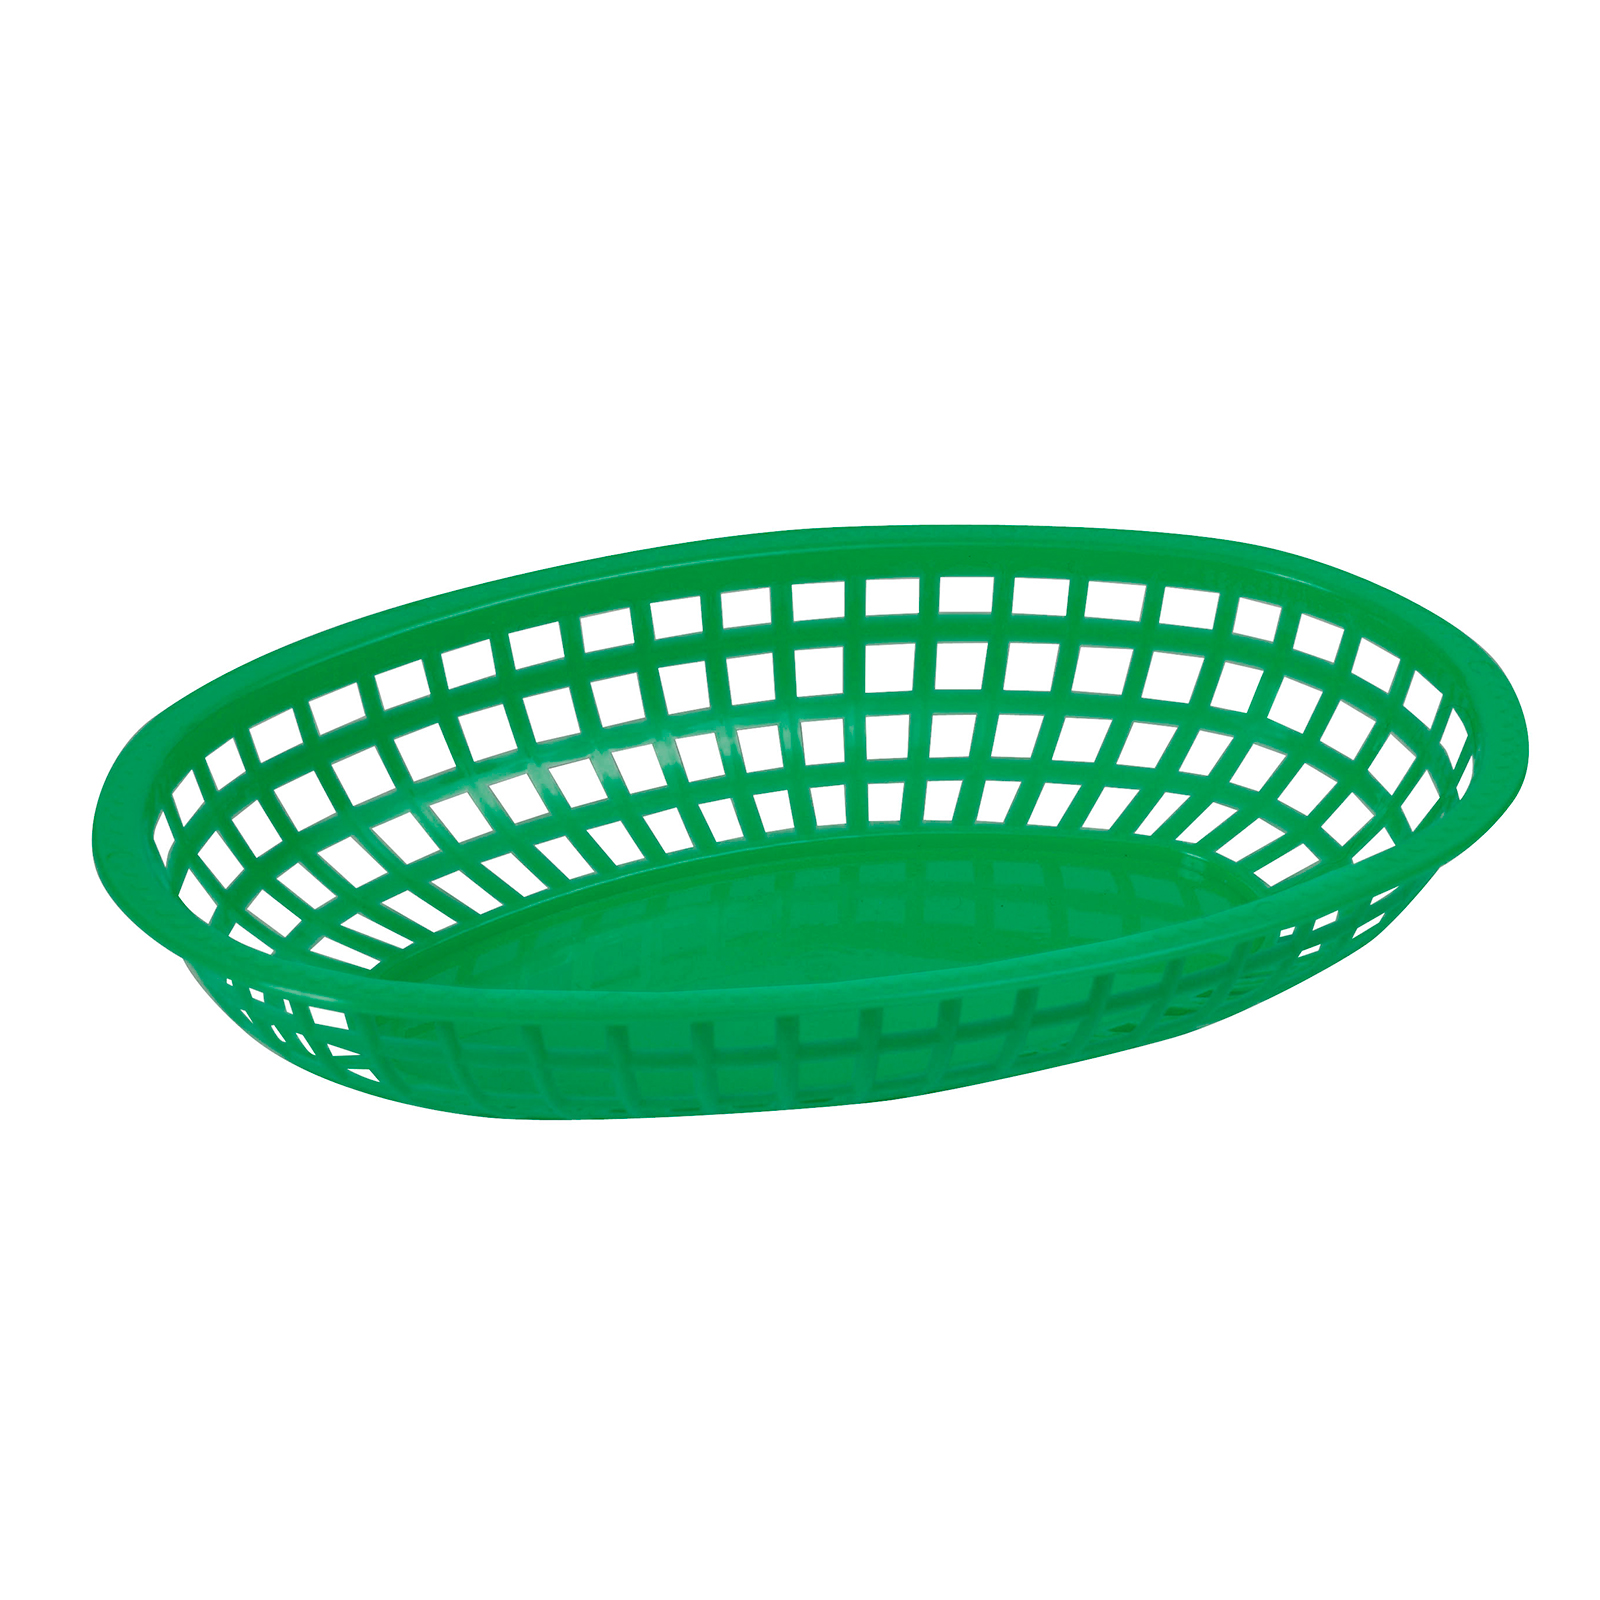 Winco POB-G basket, fast food